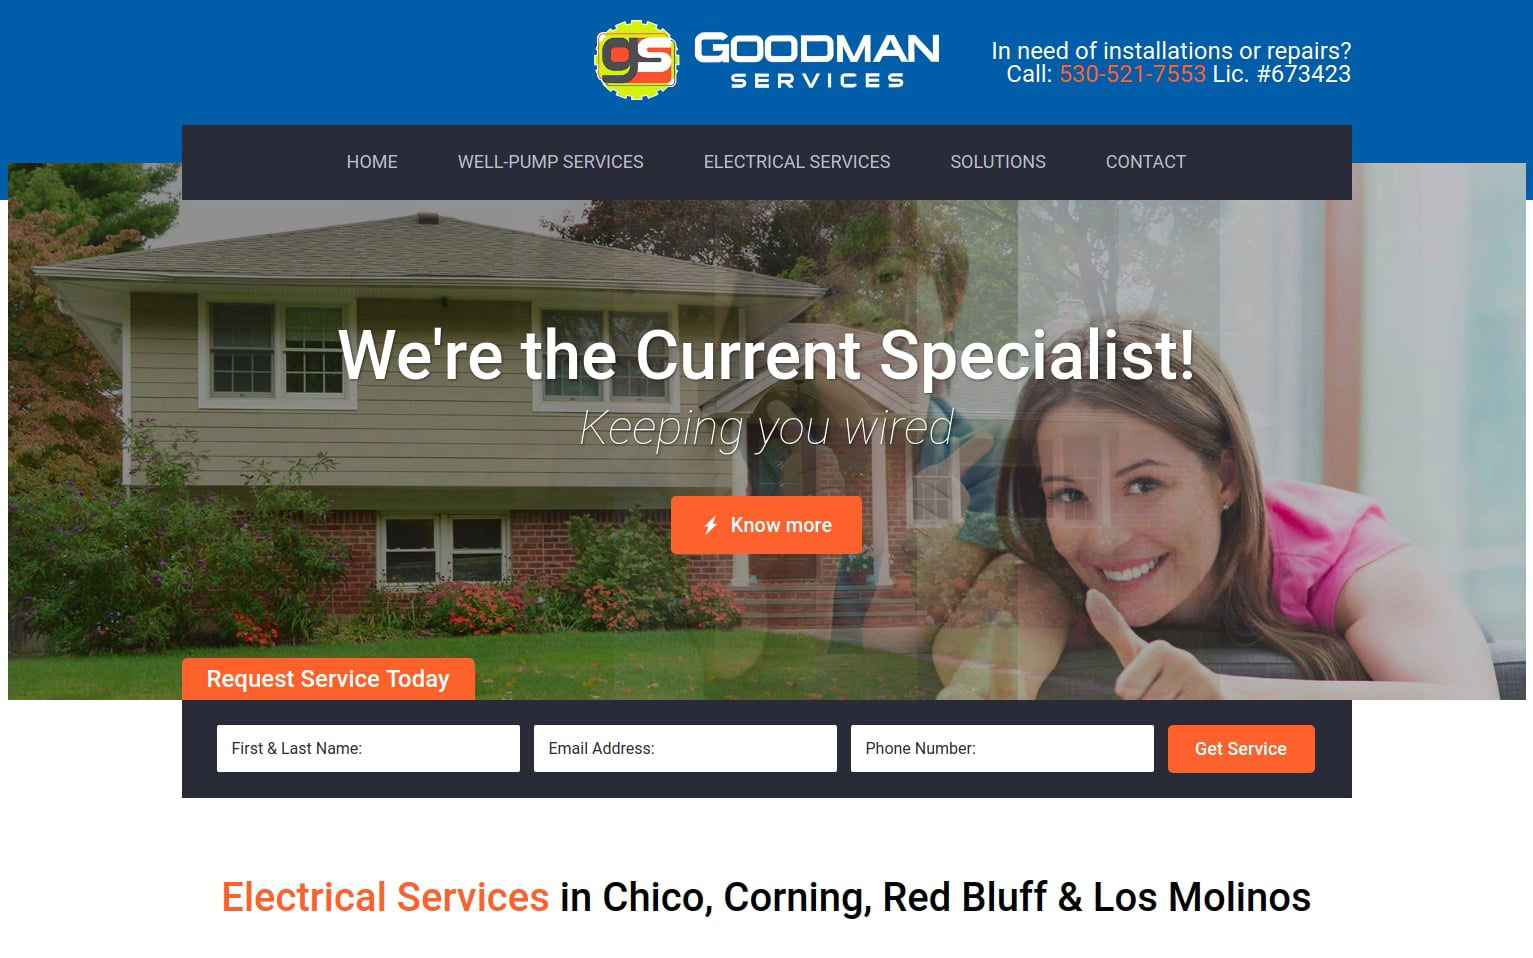 web-design-and-development-example-project-goodman-services-cropped